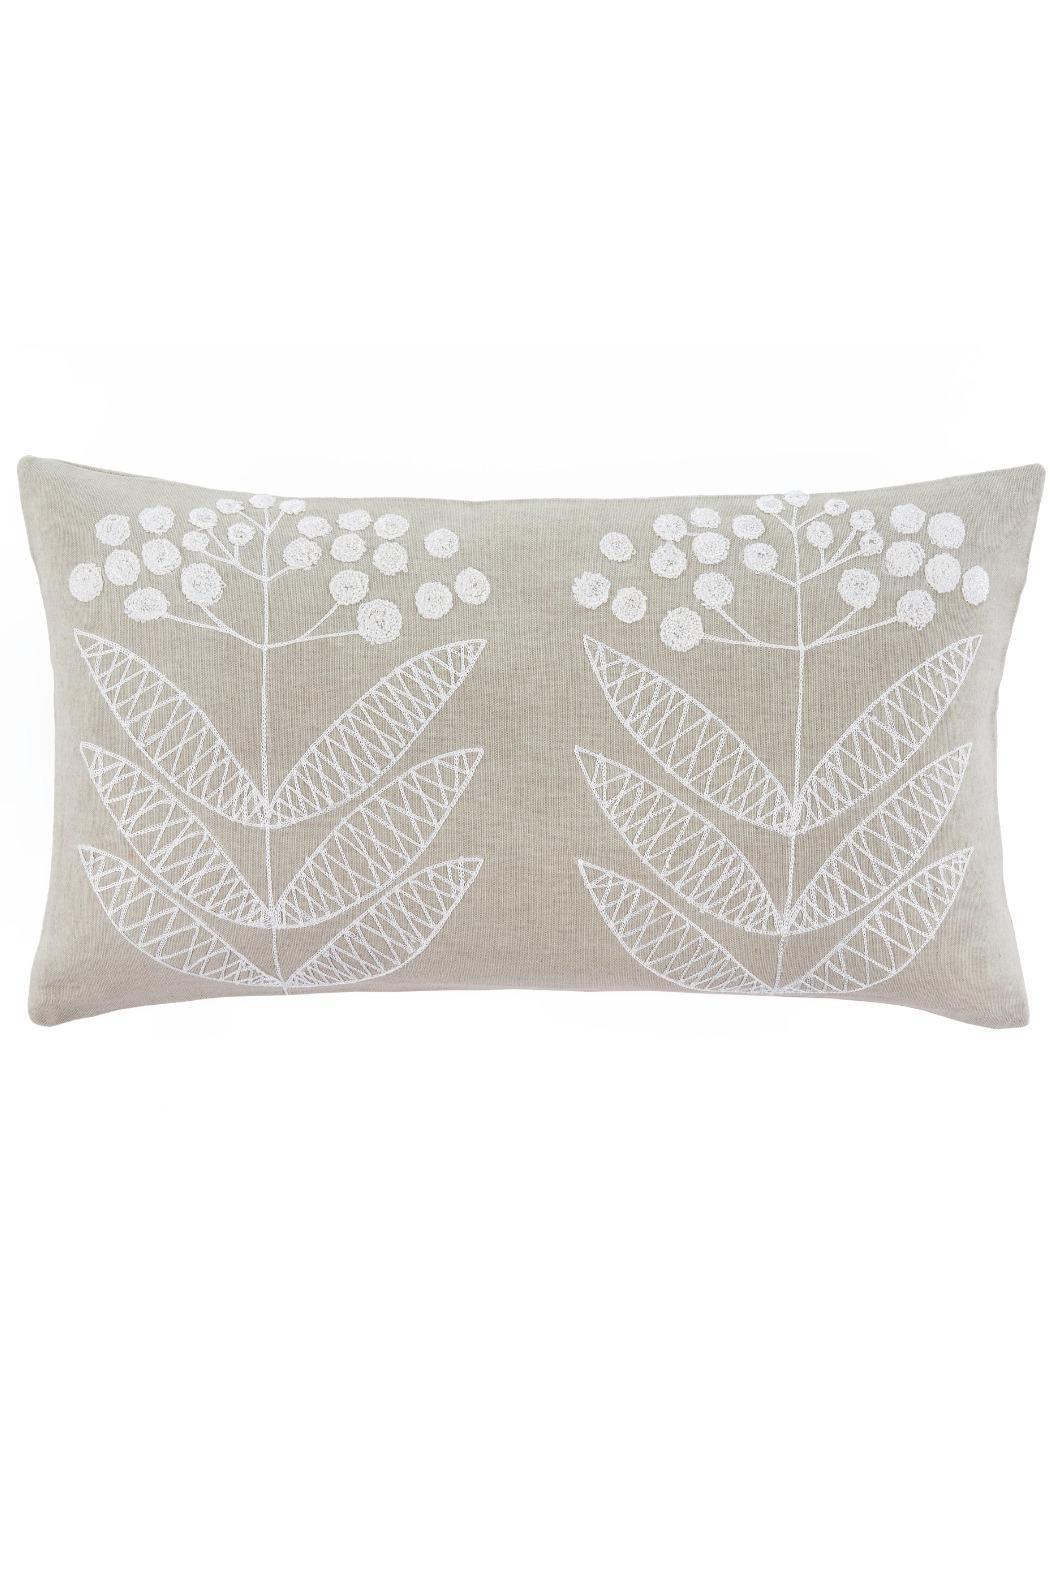 Indaba Embroidered Flower Pillow - Main Image